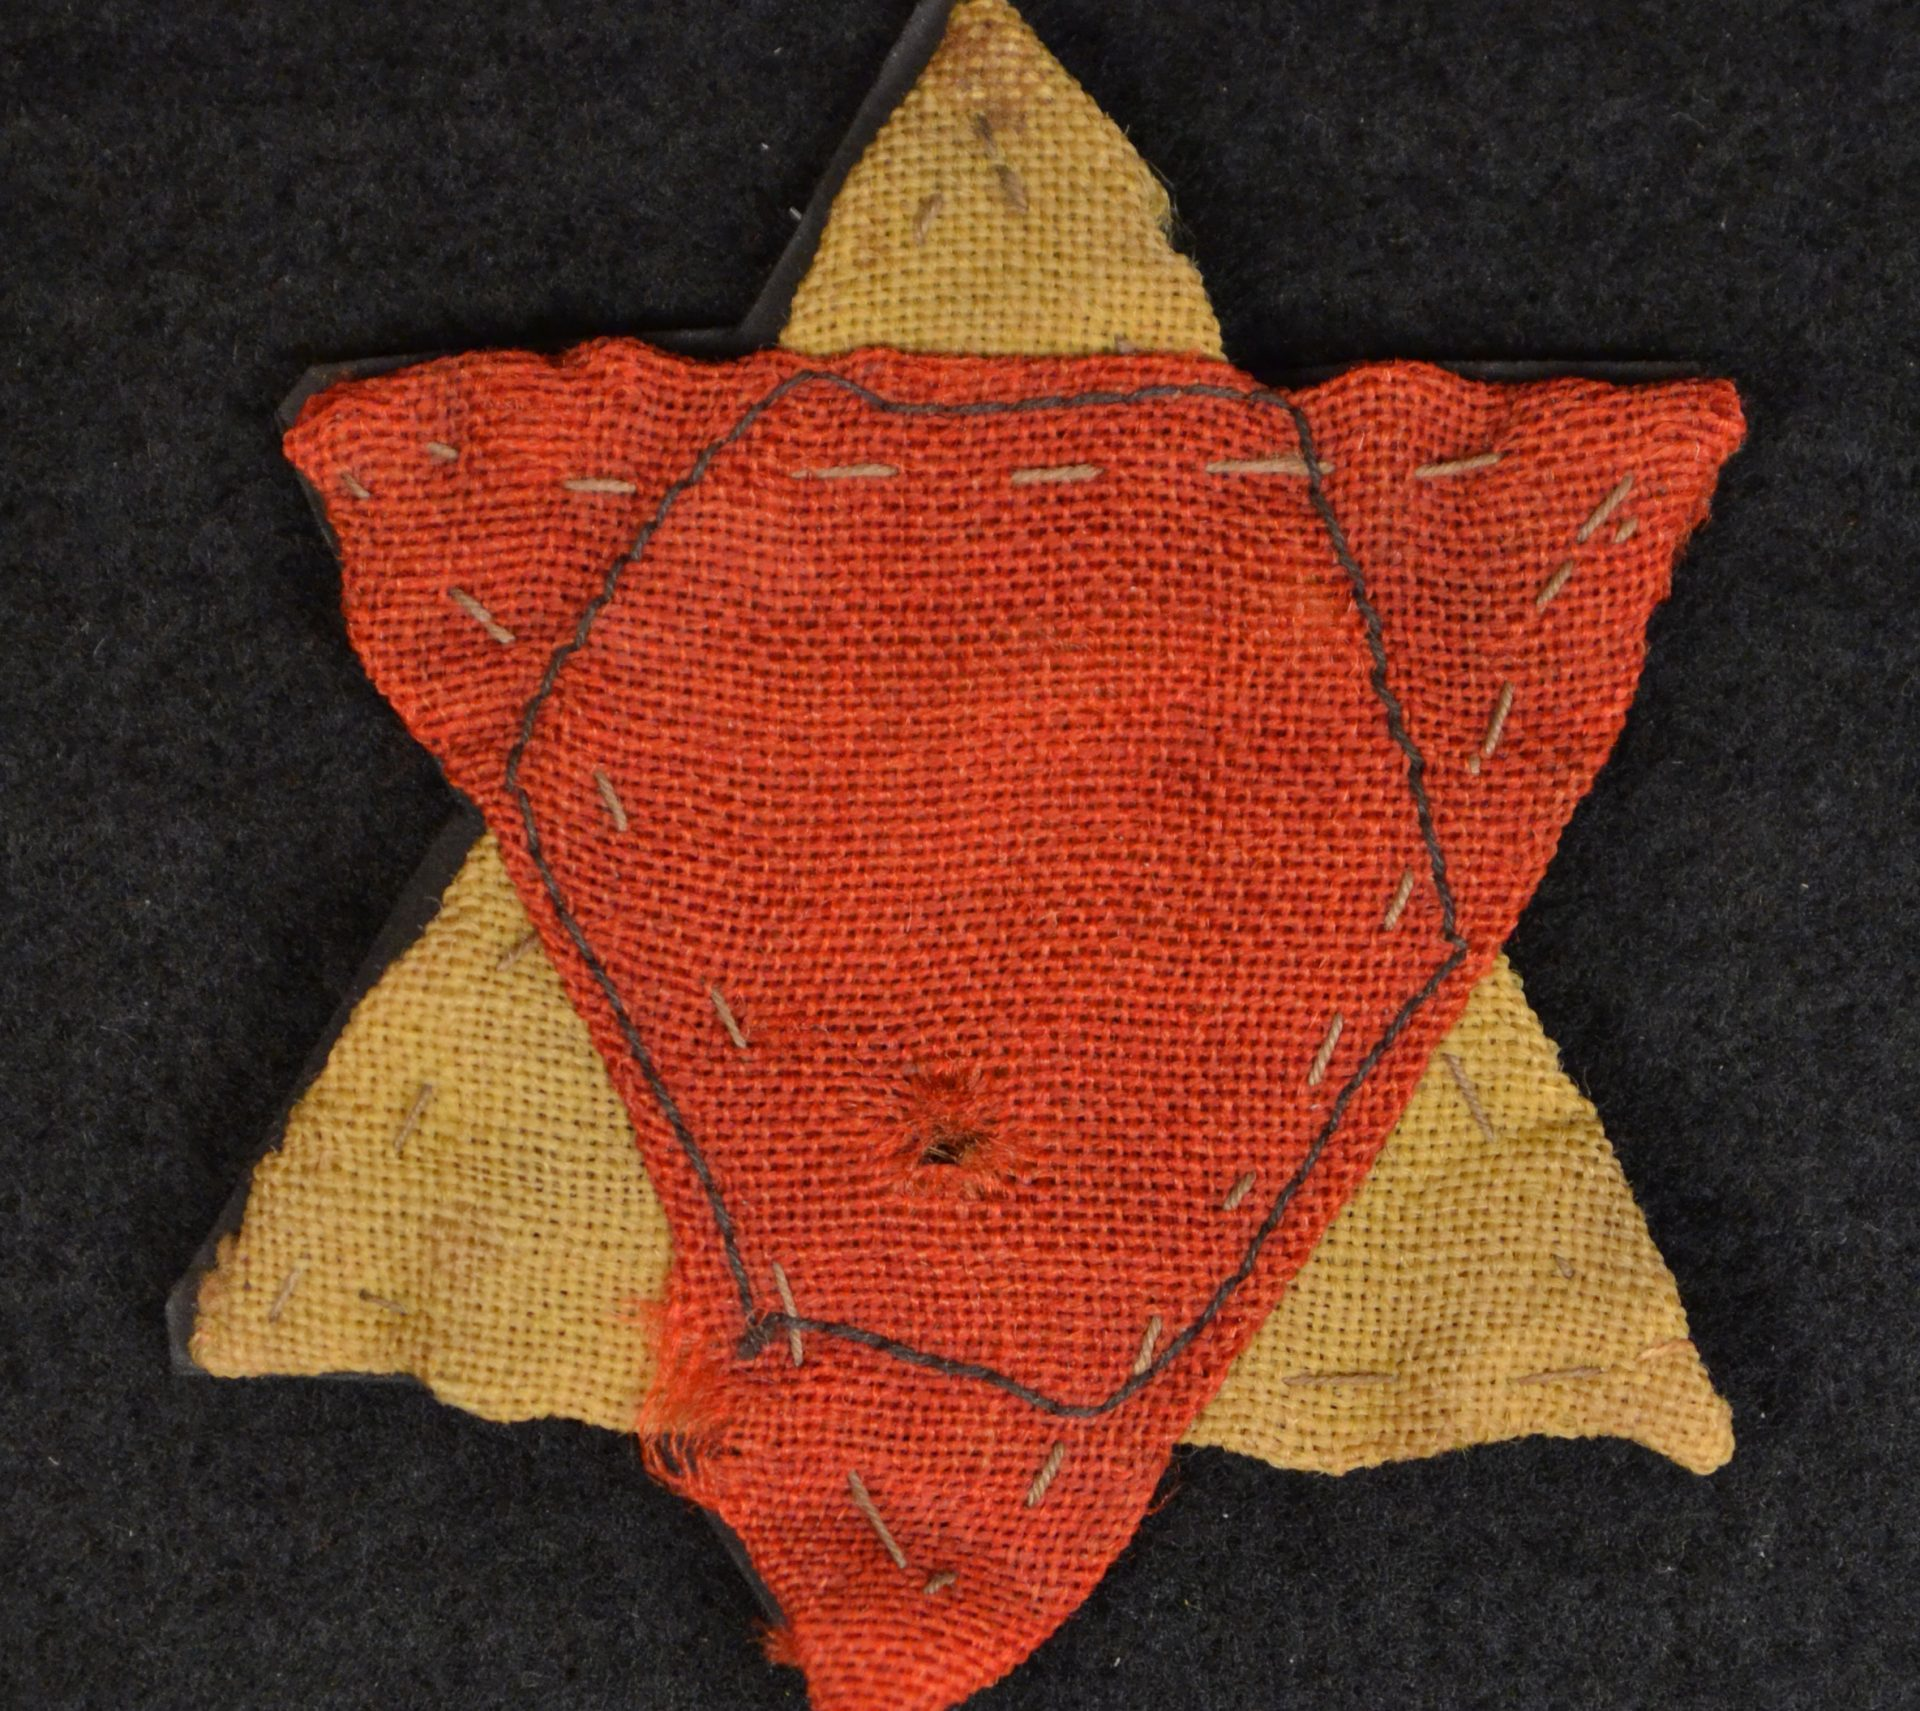 A Jewish political prisoner's identification badge, made of a yellow triangle and a red triangle. (Donated by Ilona Lindenfeld)